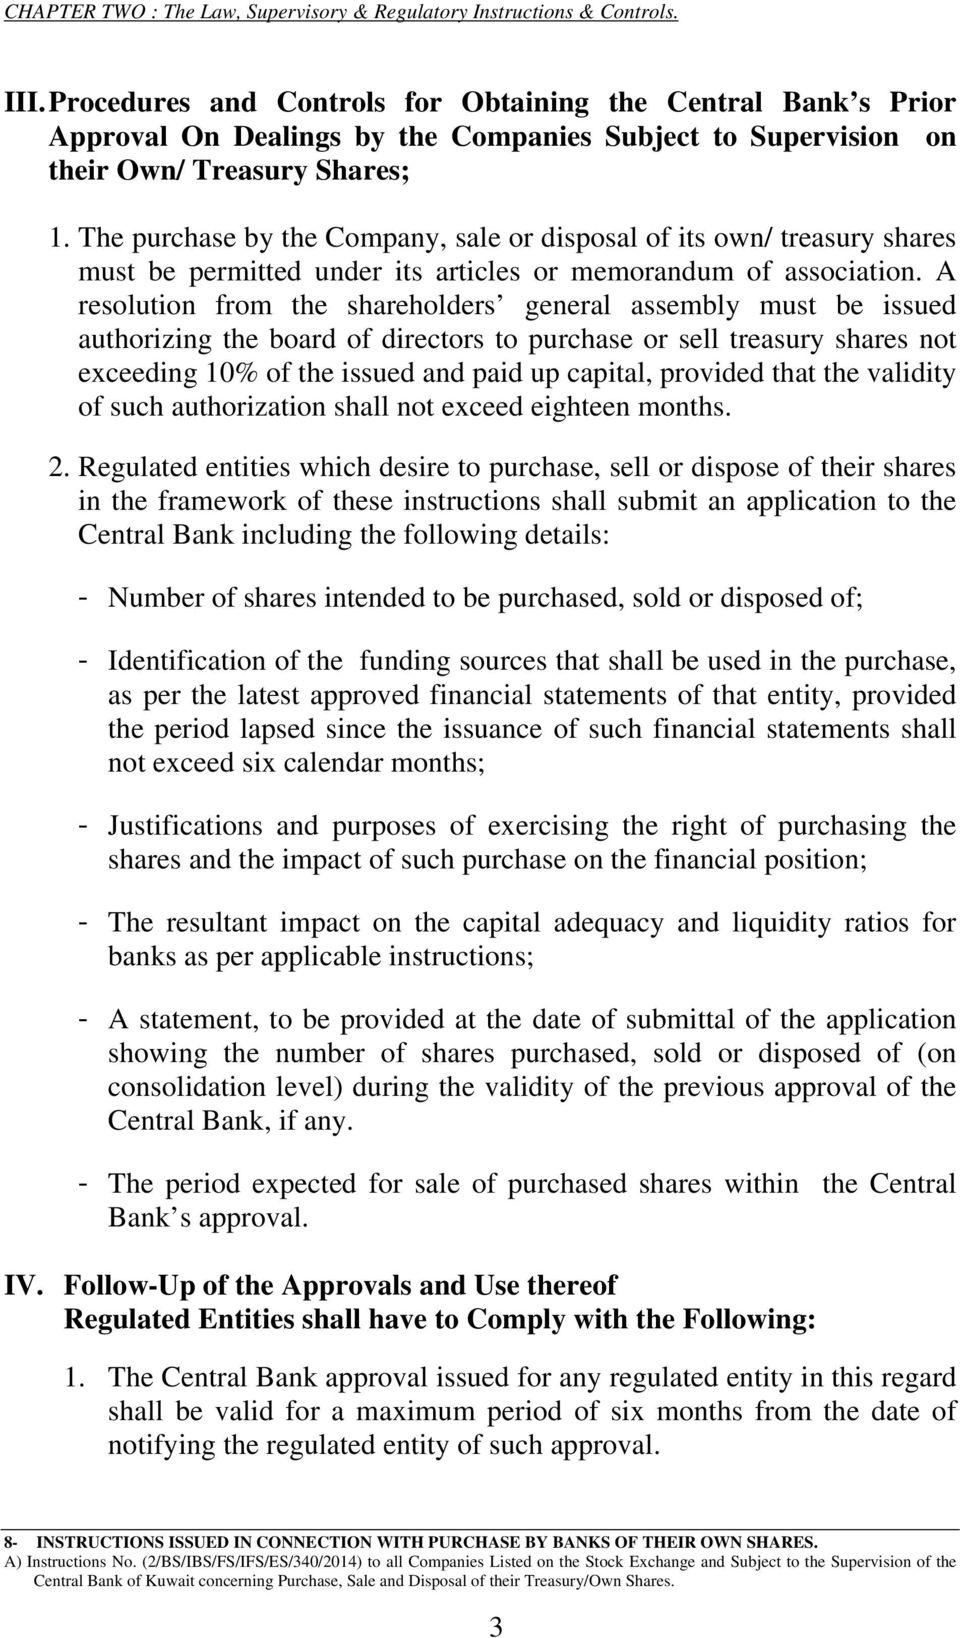 A resolution from the shareholders general assembly must be issued authorizing the board of directors to purchase or sell treasury shares not exceeding 10% of the issued and paid up capital, provided